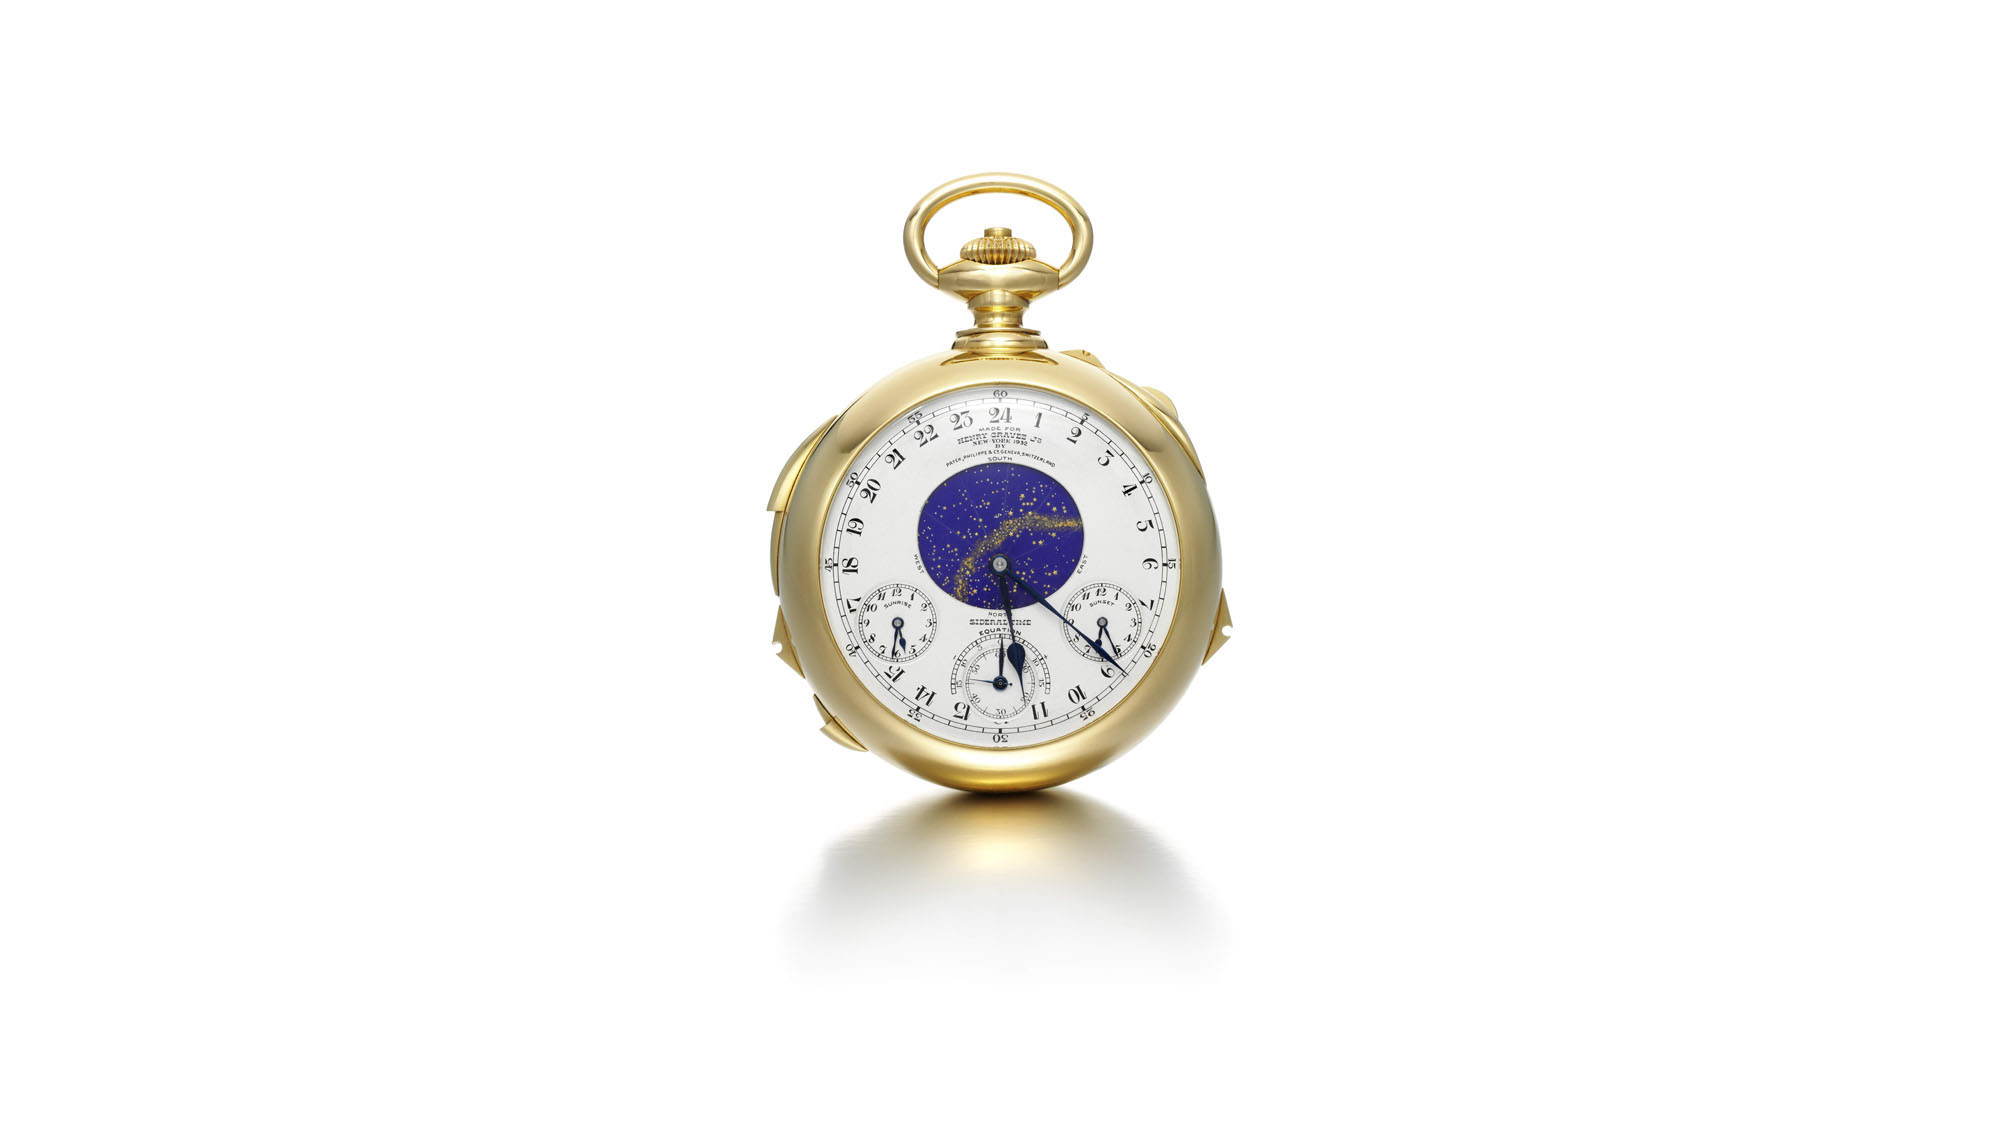 The Graves Supercomplication is slated for auction in Geneva on Nov. 11th, 2014.